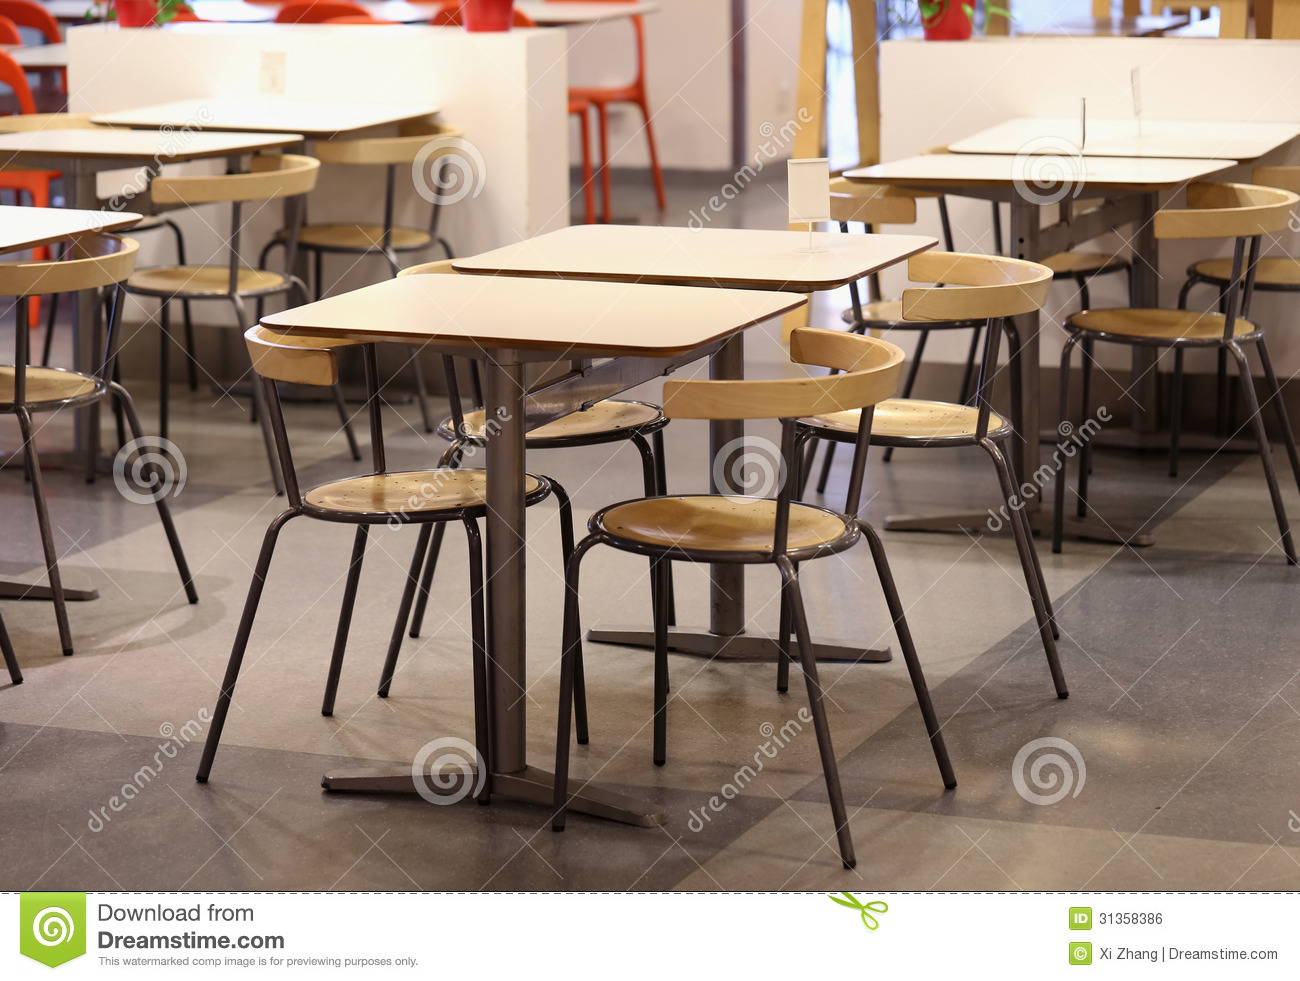 Restaurants Chair And Table Royalty Free Stock Image